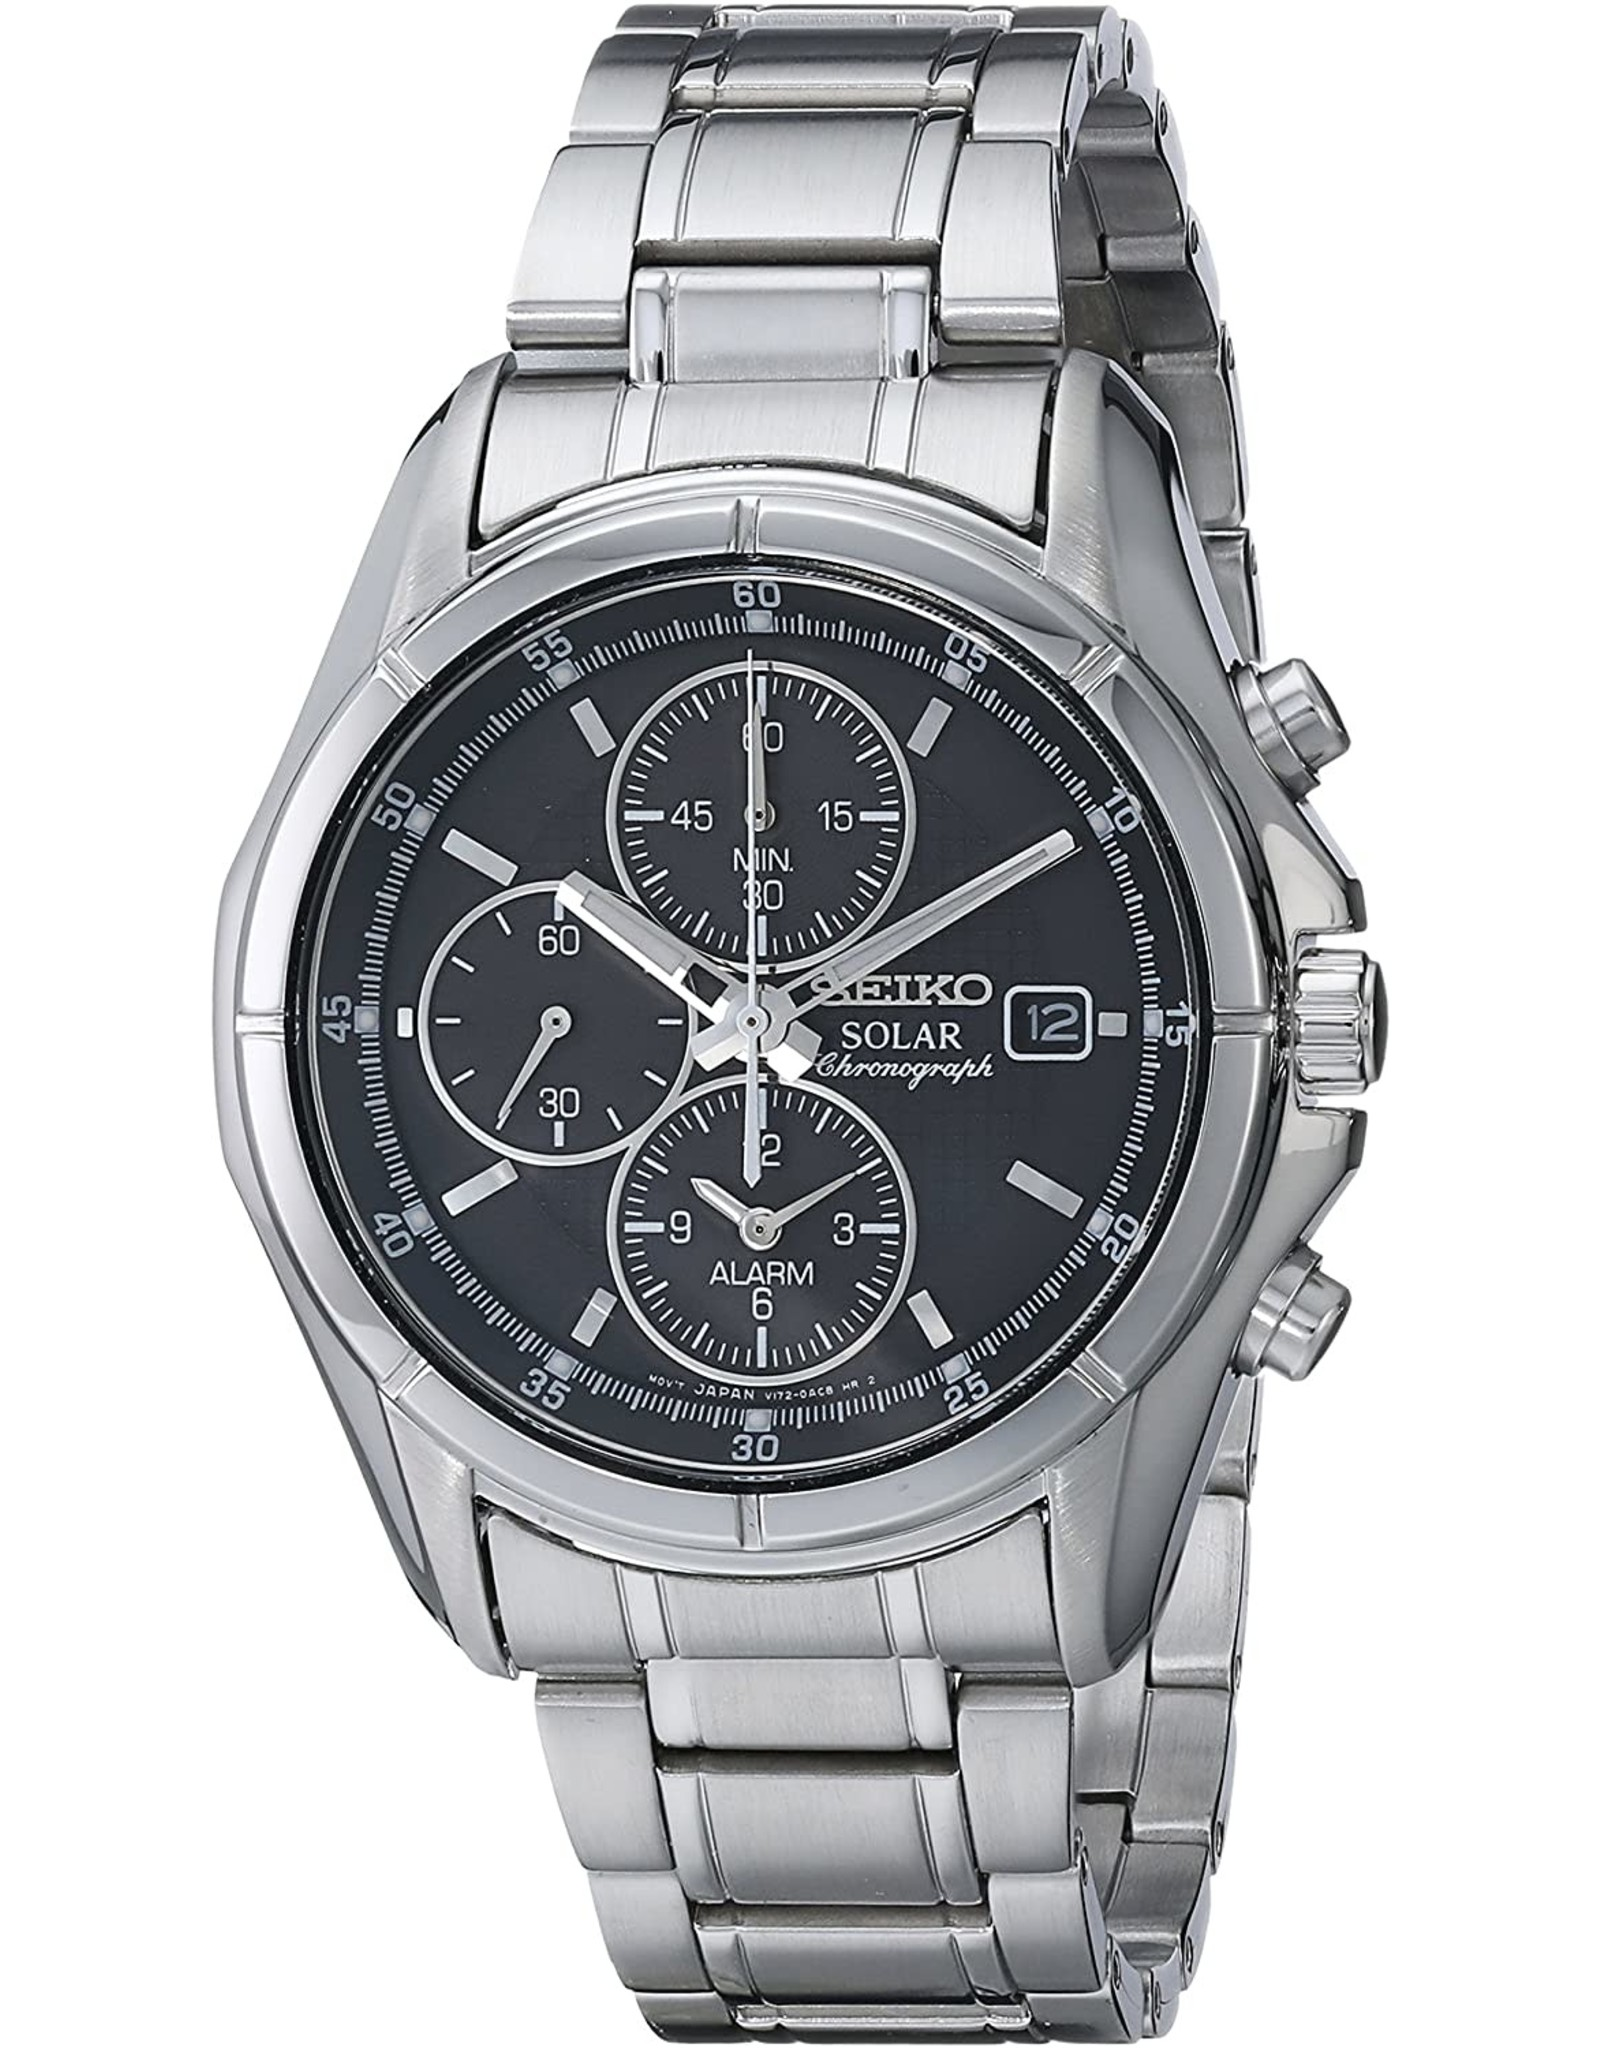 Mens Seiko Solar Chronograph Alarm Watch with Stainless Steel Band, 39mm